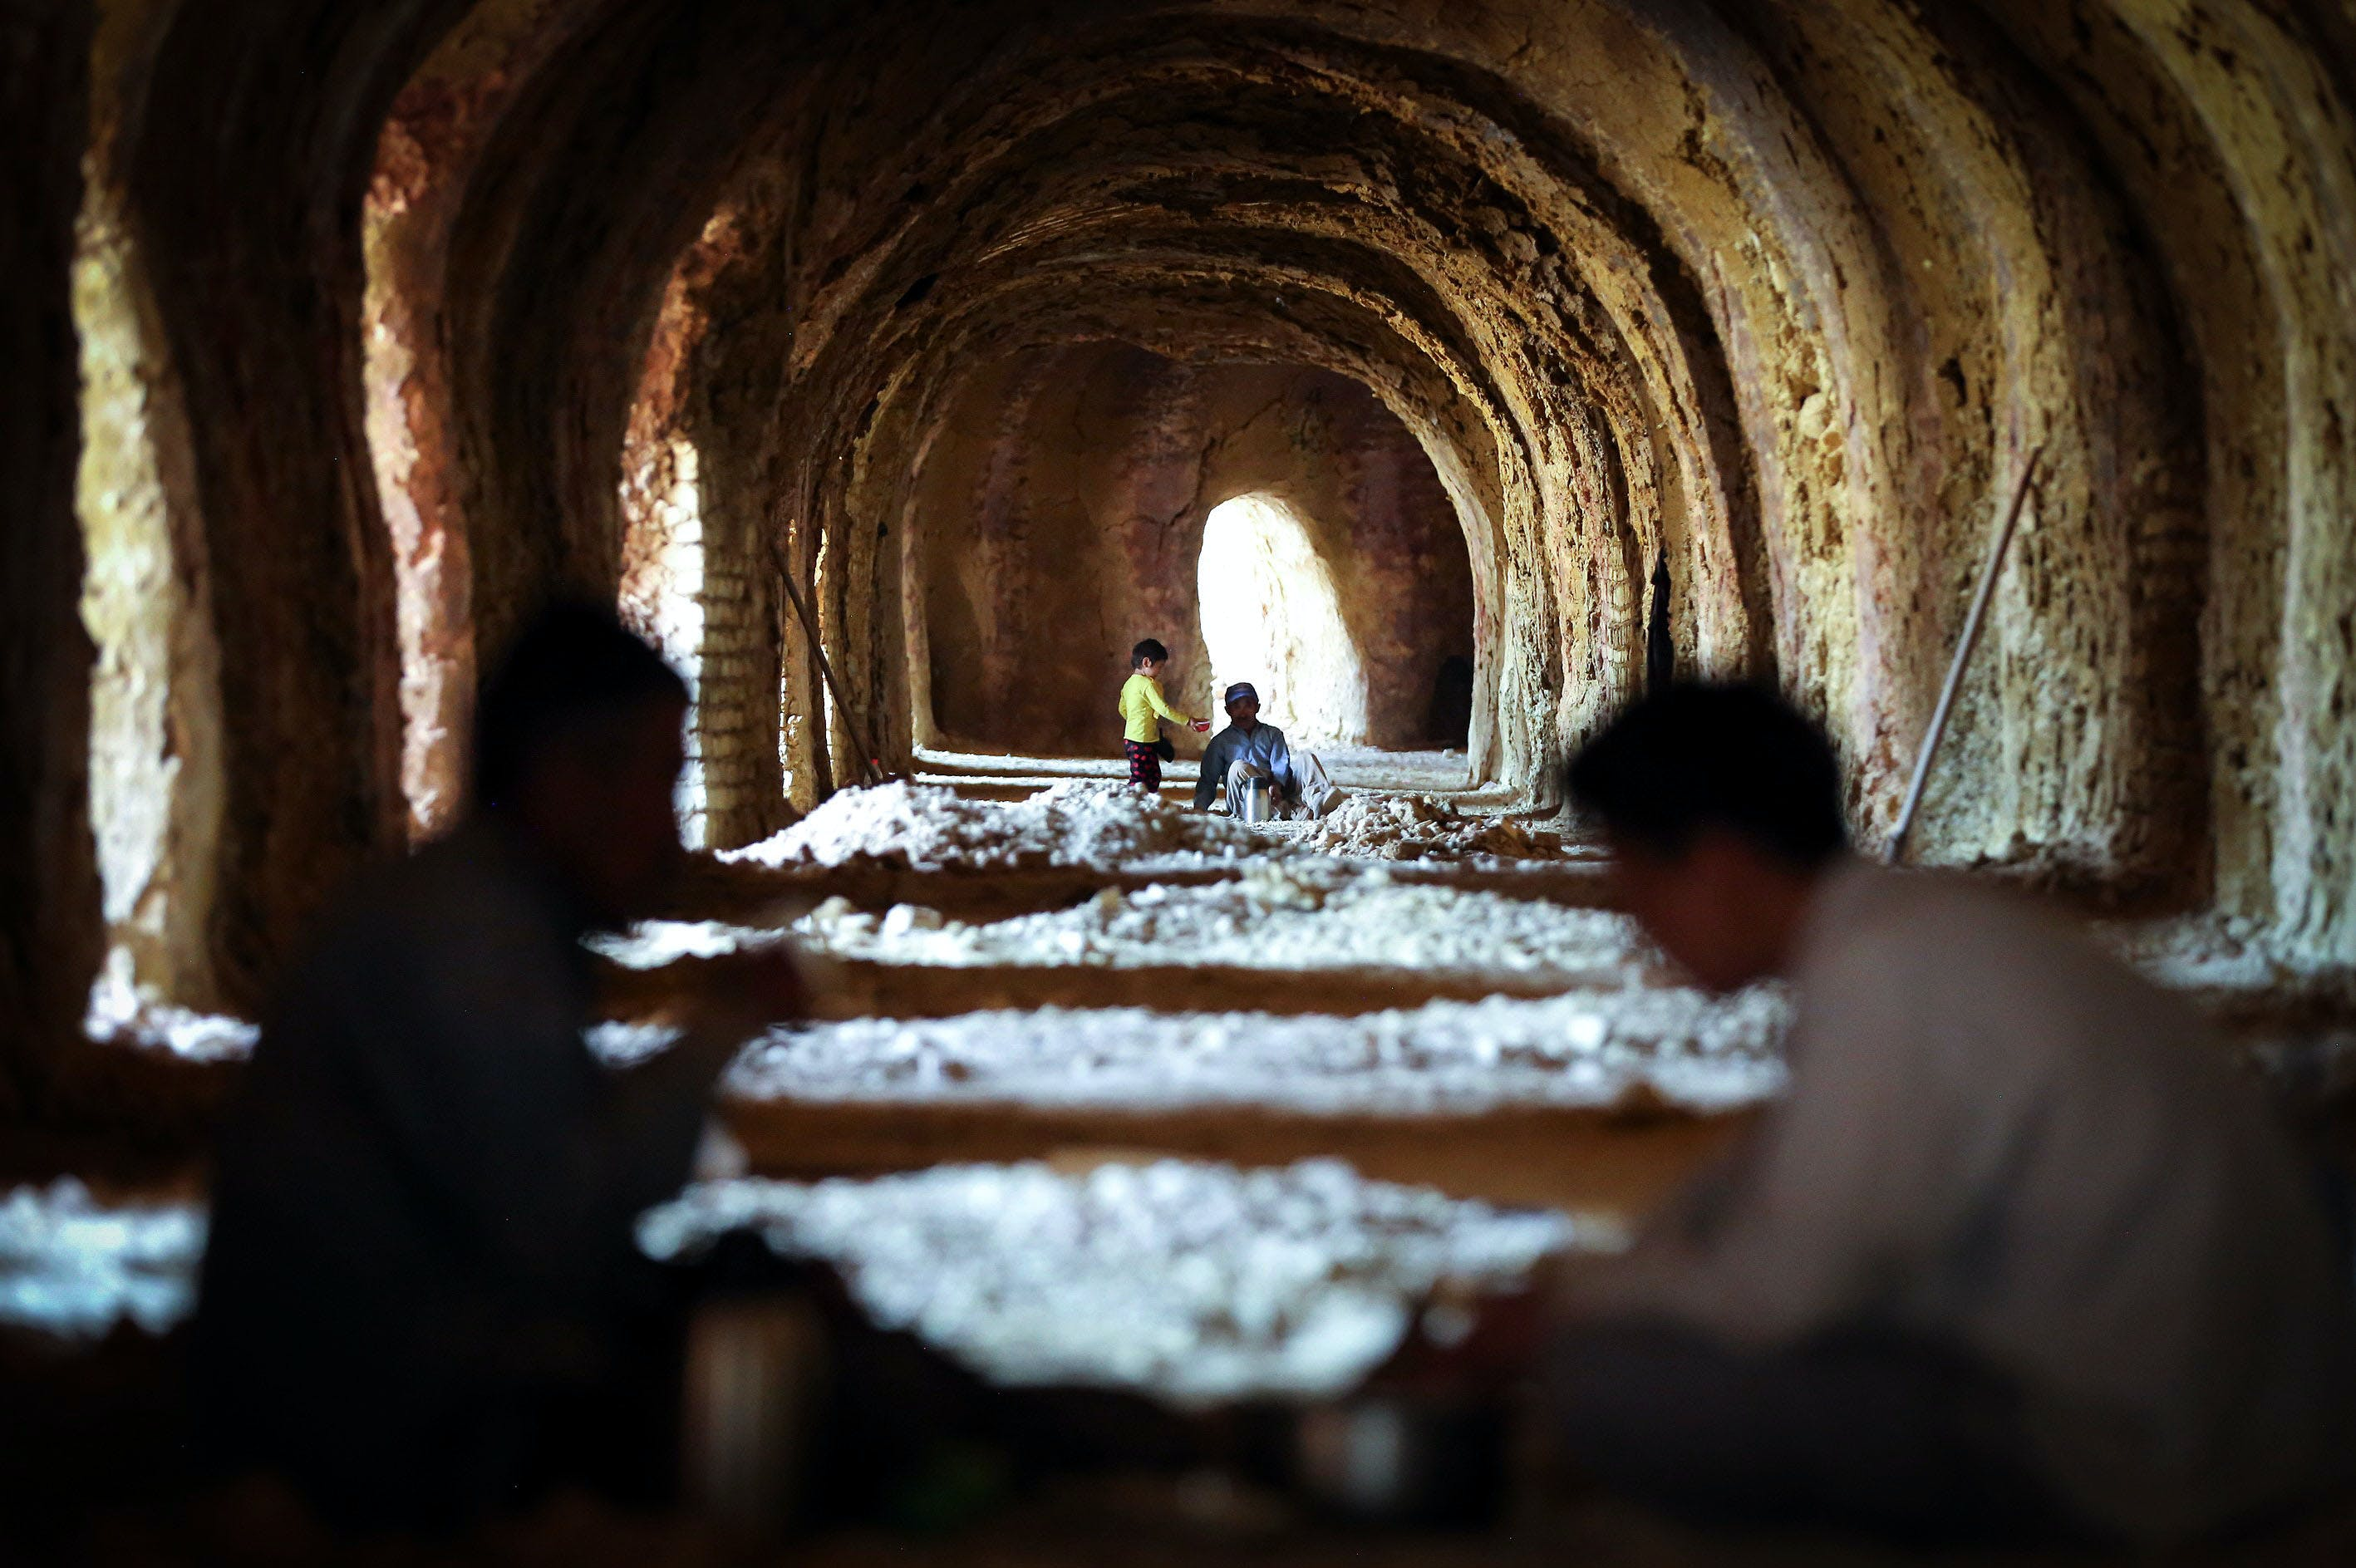 TEHRAN, IRAN - APRIL 24: Afghan immigrants and a child, who migrated to Iran due to security and economic problems in Afghanistan, work approximately 13 hours for 13 dollars daily wage at brick kiln in Pakdasht province of Tehran, Iran on April 24, 2016. (Photo by Fatemeh Bahrami/Anadolu Agency/Getty Images)